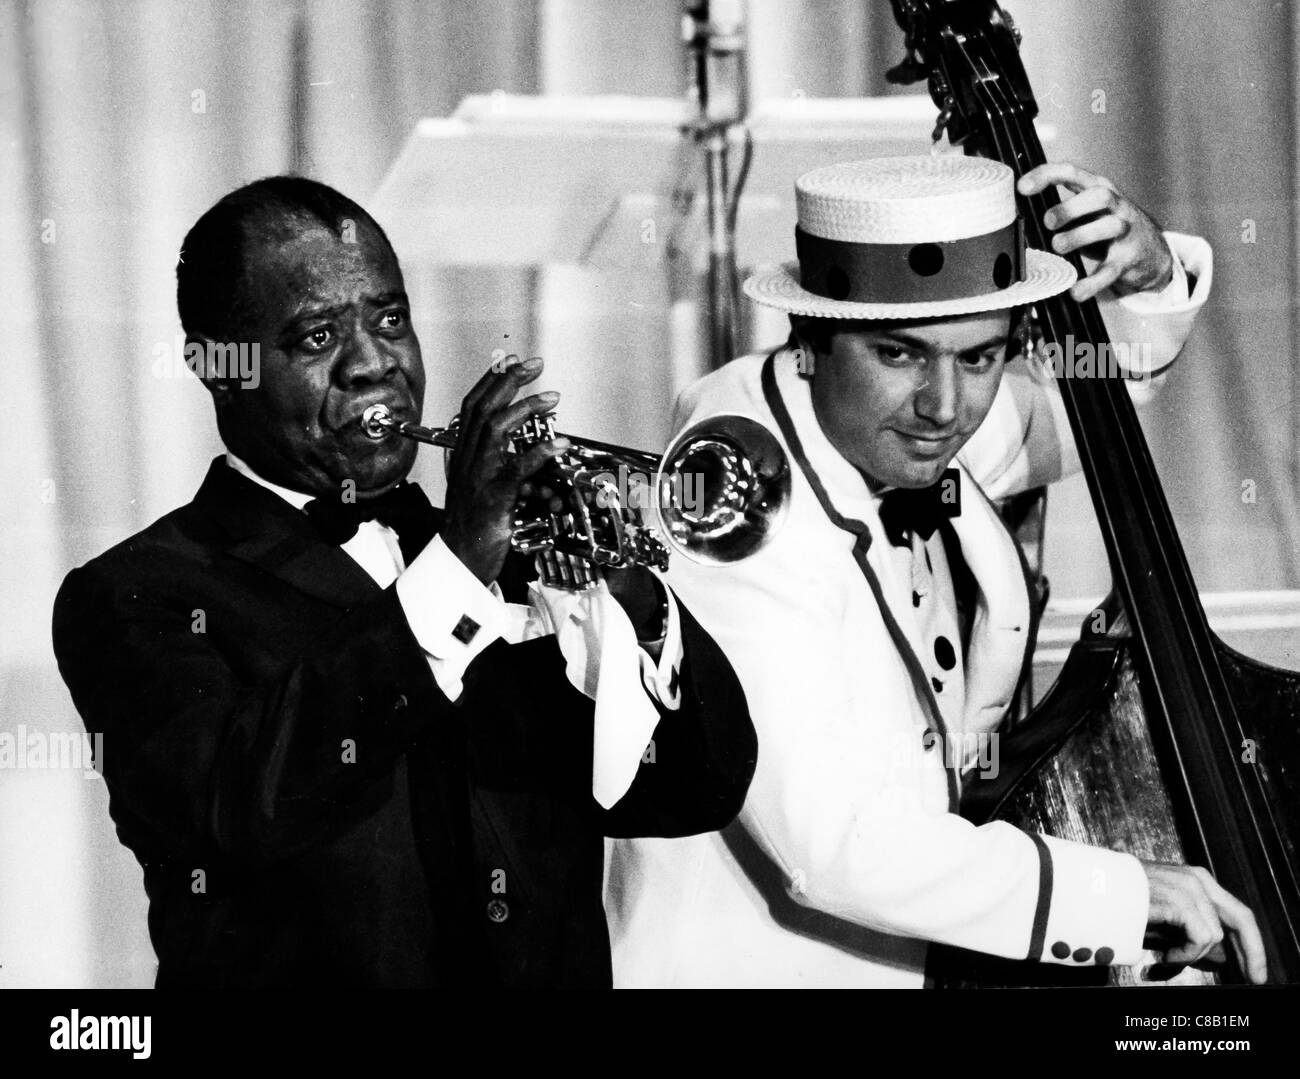 louis armstrong,1968 - Stock Image